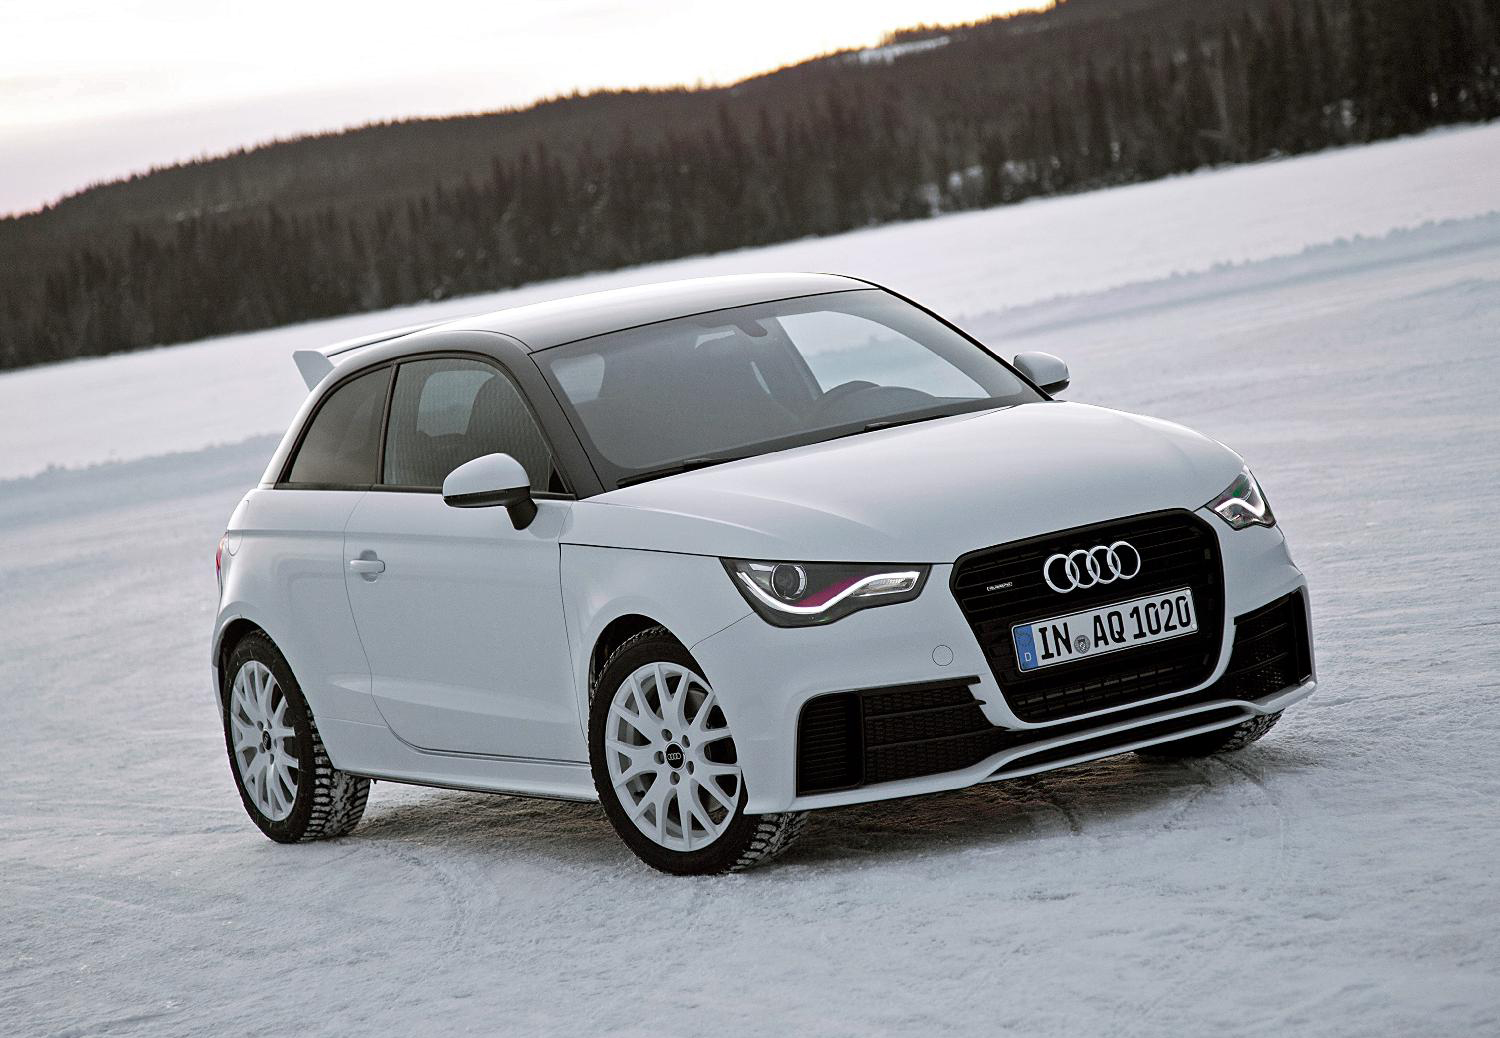 2012 audi a1 quattro limited edition 02